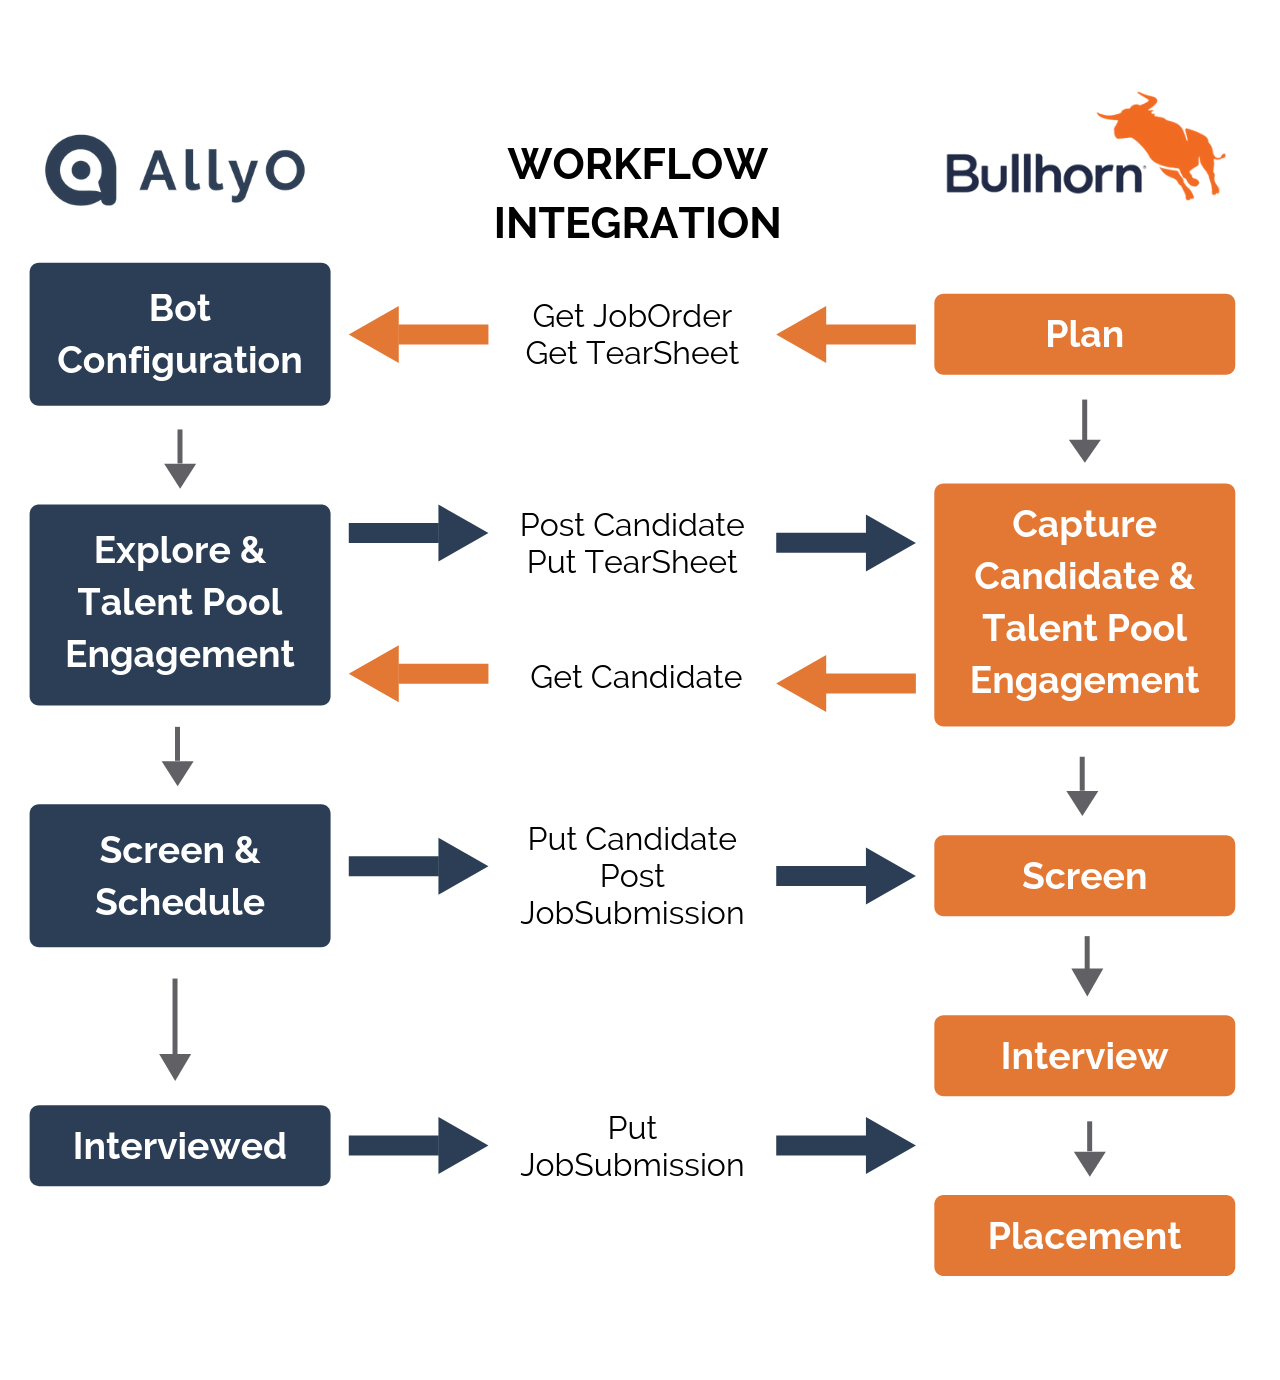 Bullhorn + AllyO Workflow Integration